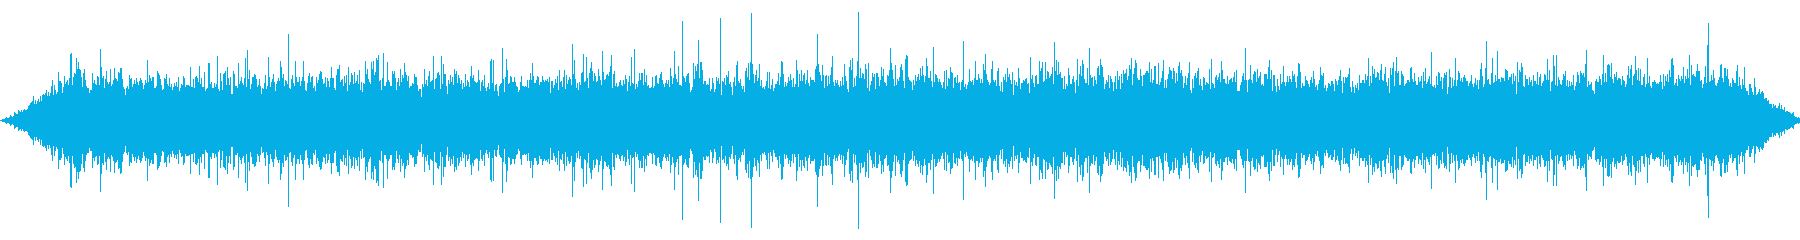 Small waterway waterfall's reproduced waveform